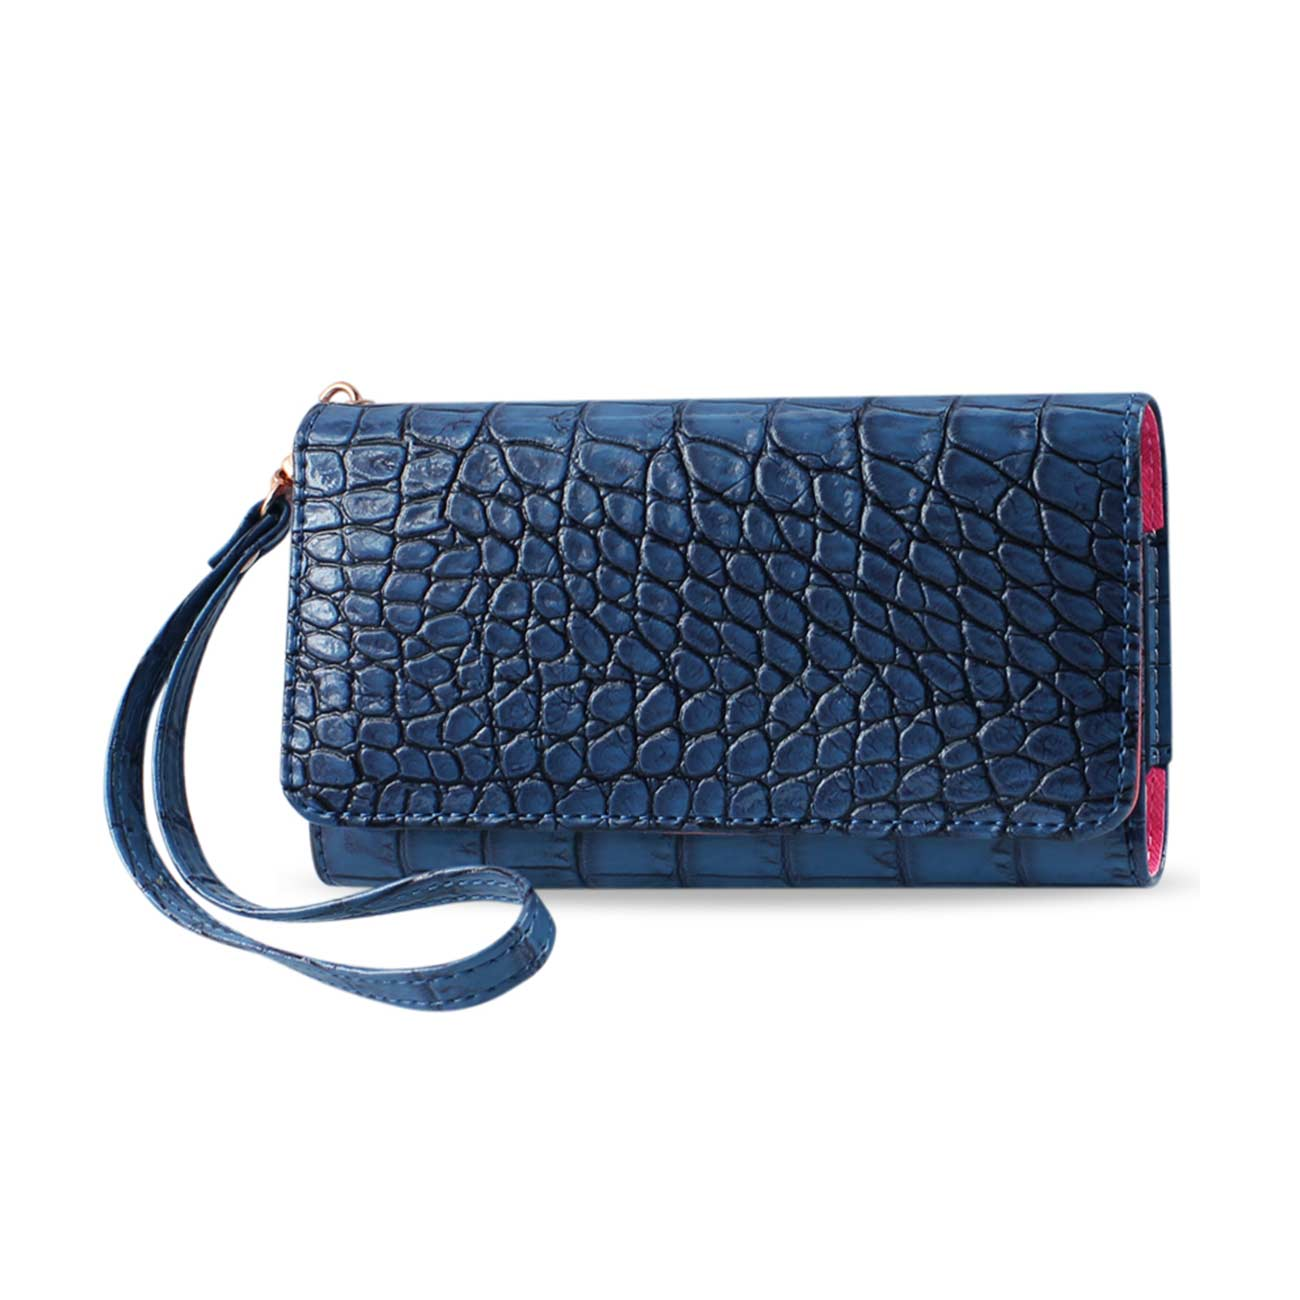 CROCODILE PATTERN PURSE WALLET CASE SAMSUNG MEGA 6.3/ ZTE N9520 NAVY (6.7X3.5X0.5 INCHES)